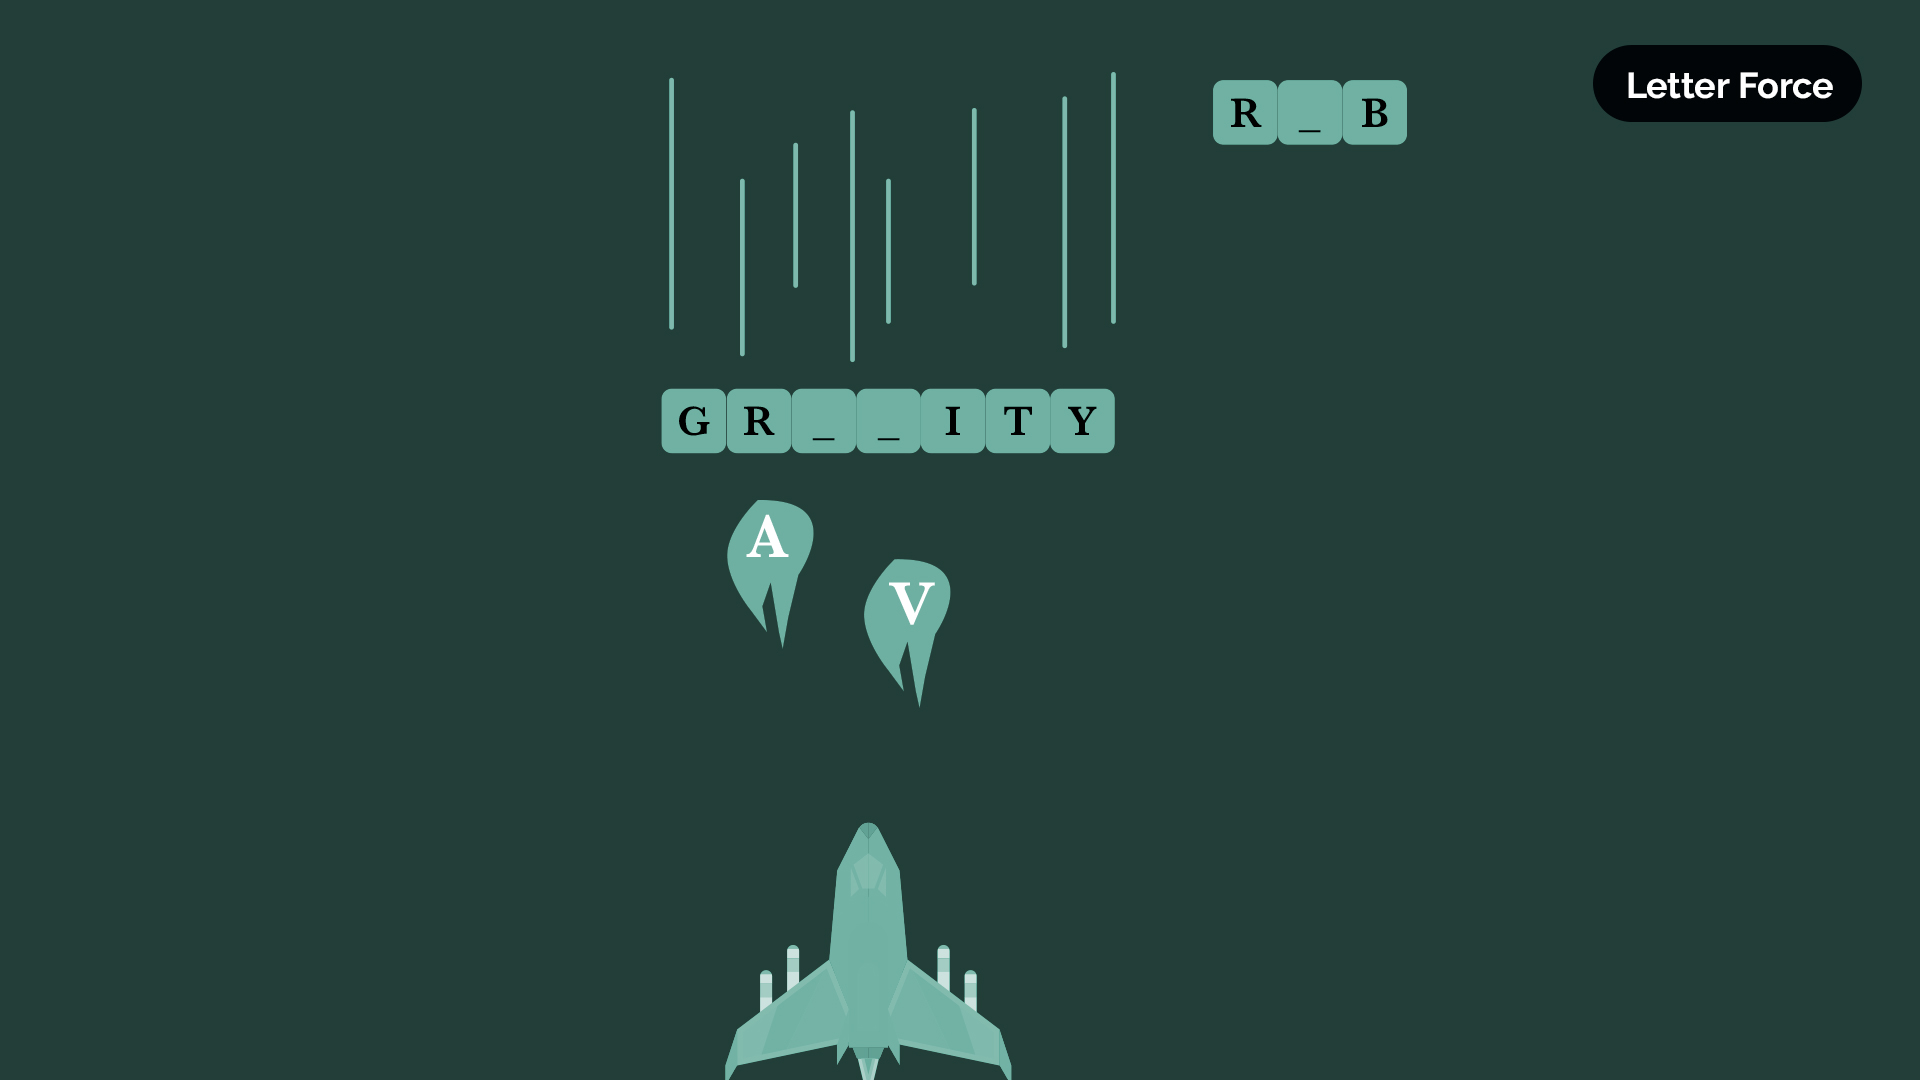 Letter Force Asteroids style game